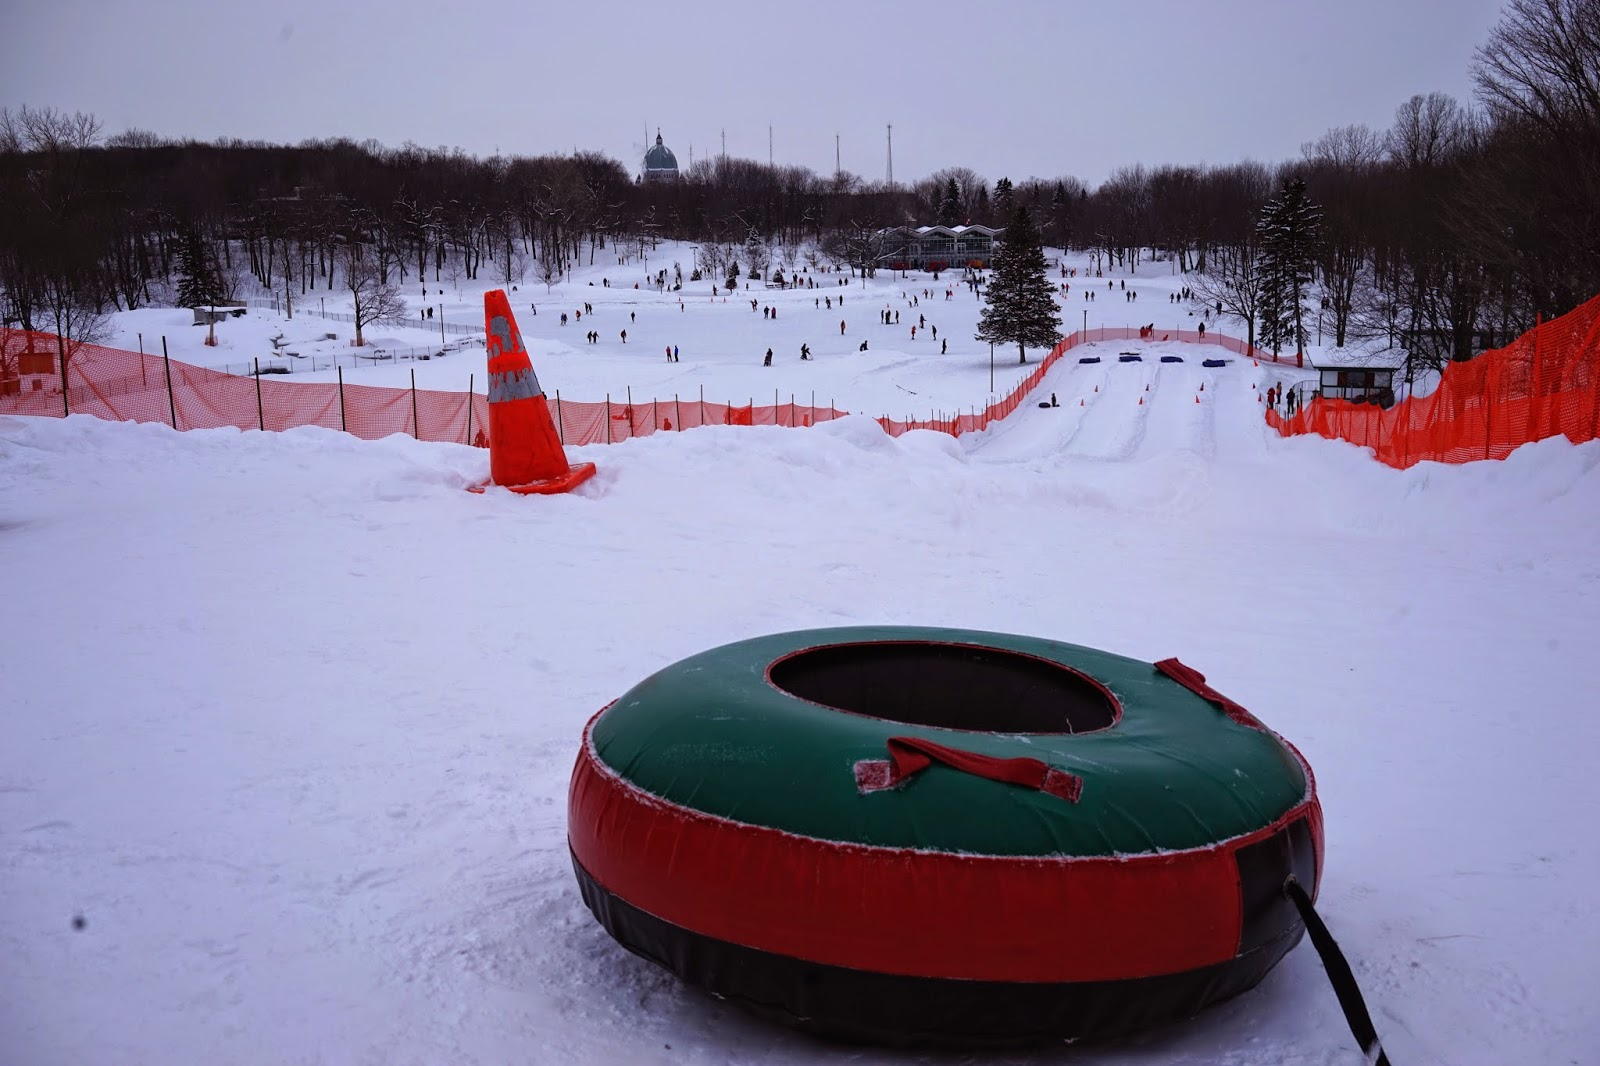 tubing in montreal